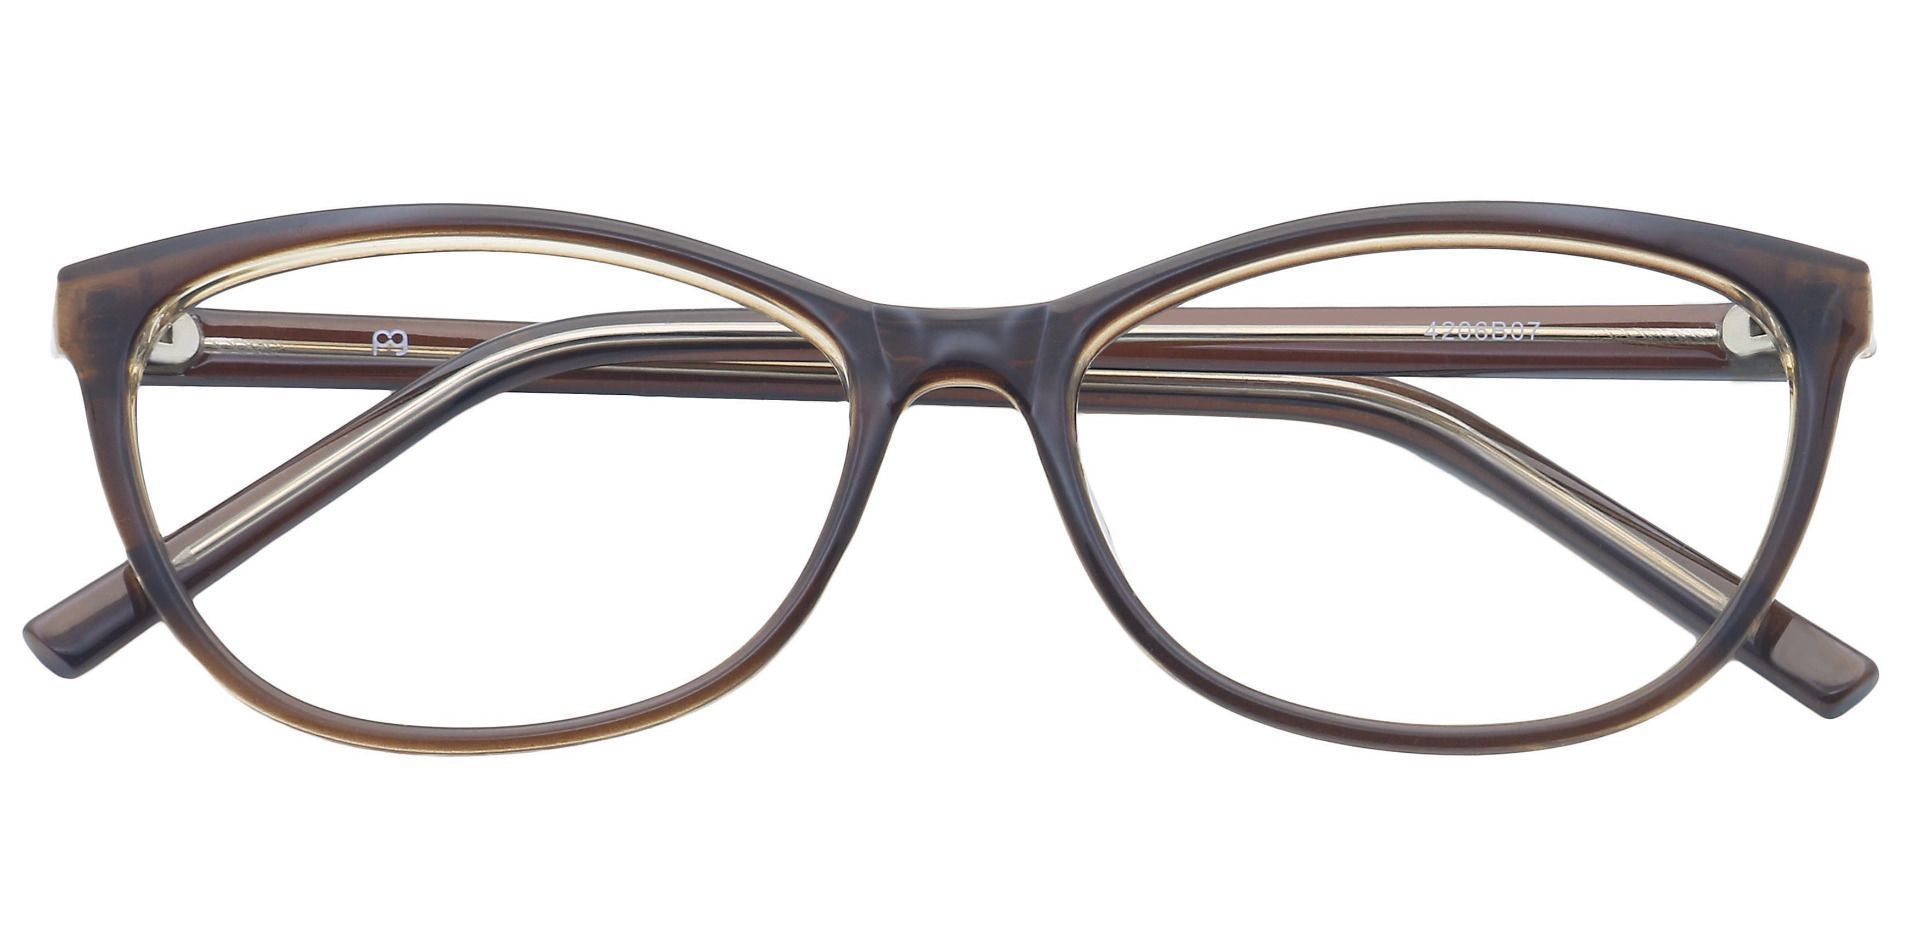 Sally Oval Reading Glasses - Brown